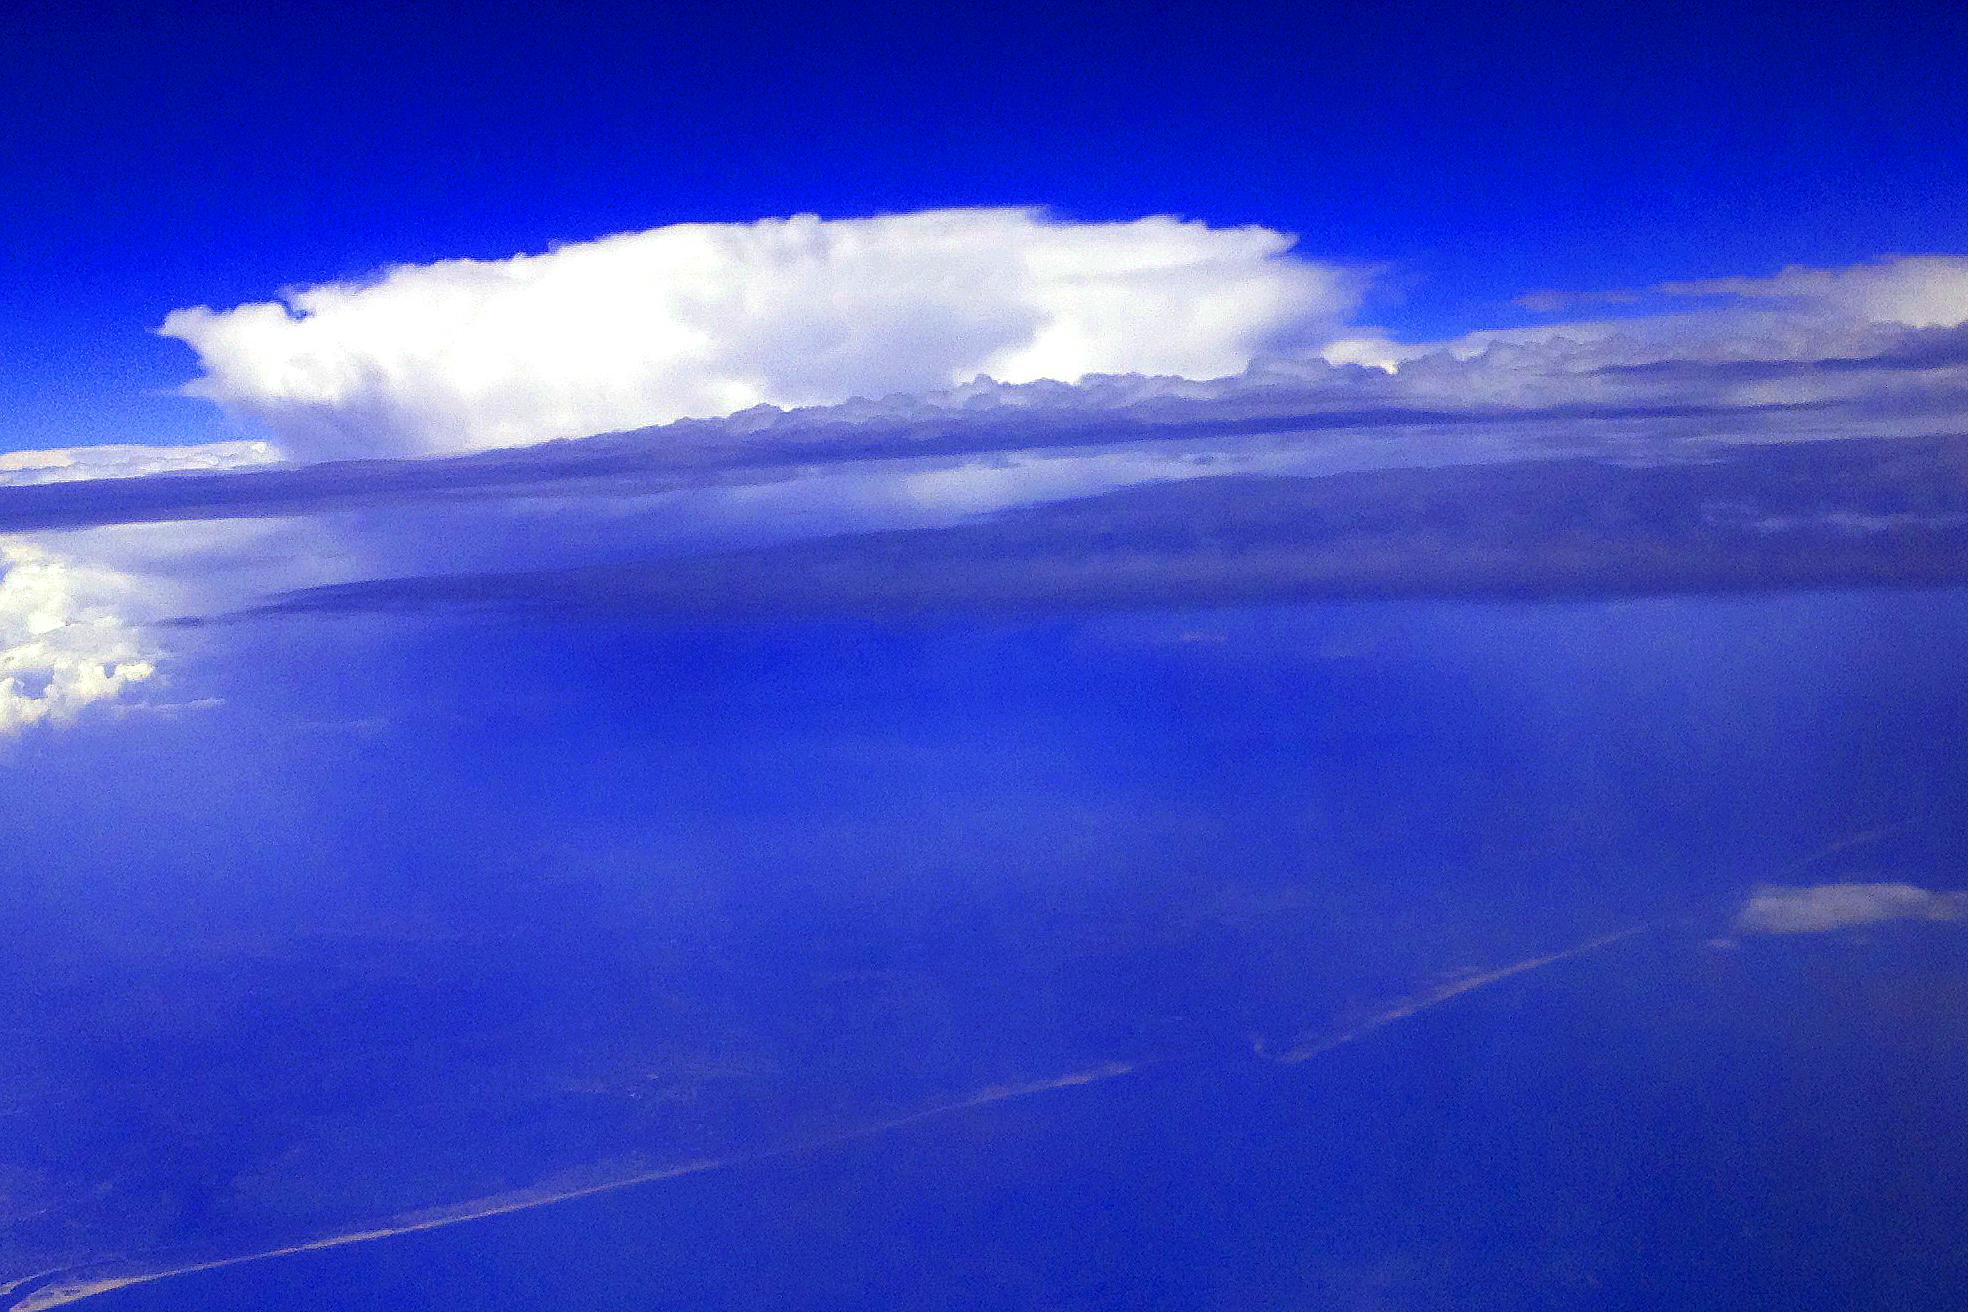 Figure 1 - Storms over the New Jersey shore, IPhone photograph,(c) DE Wolf